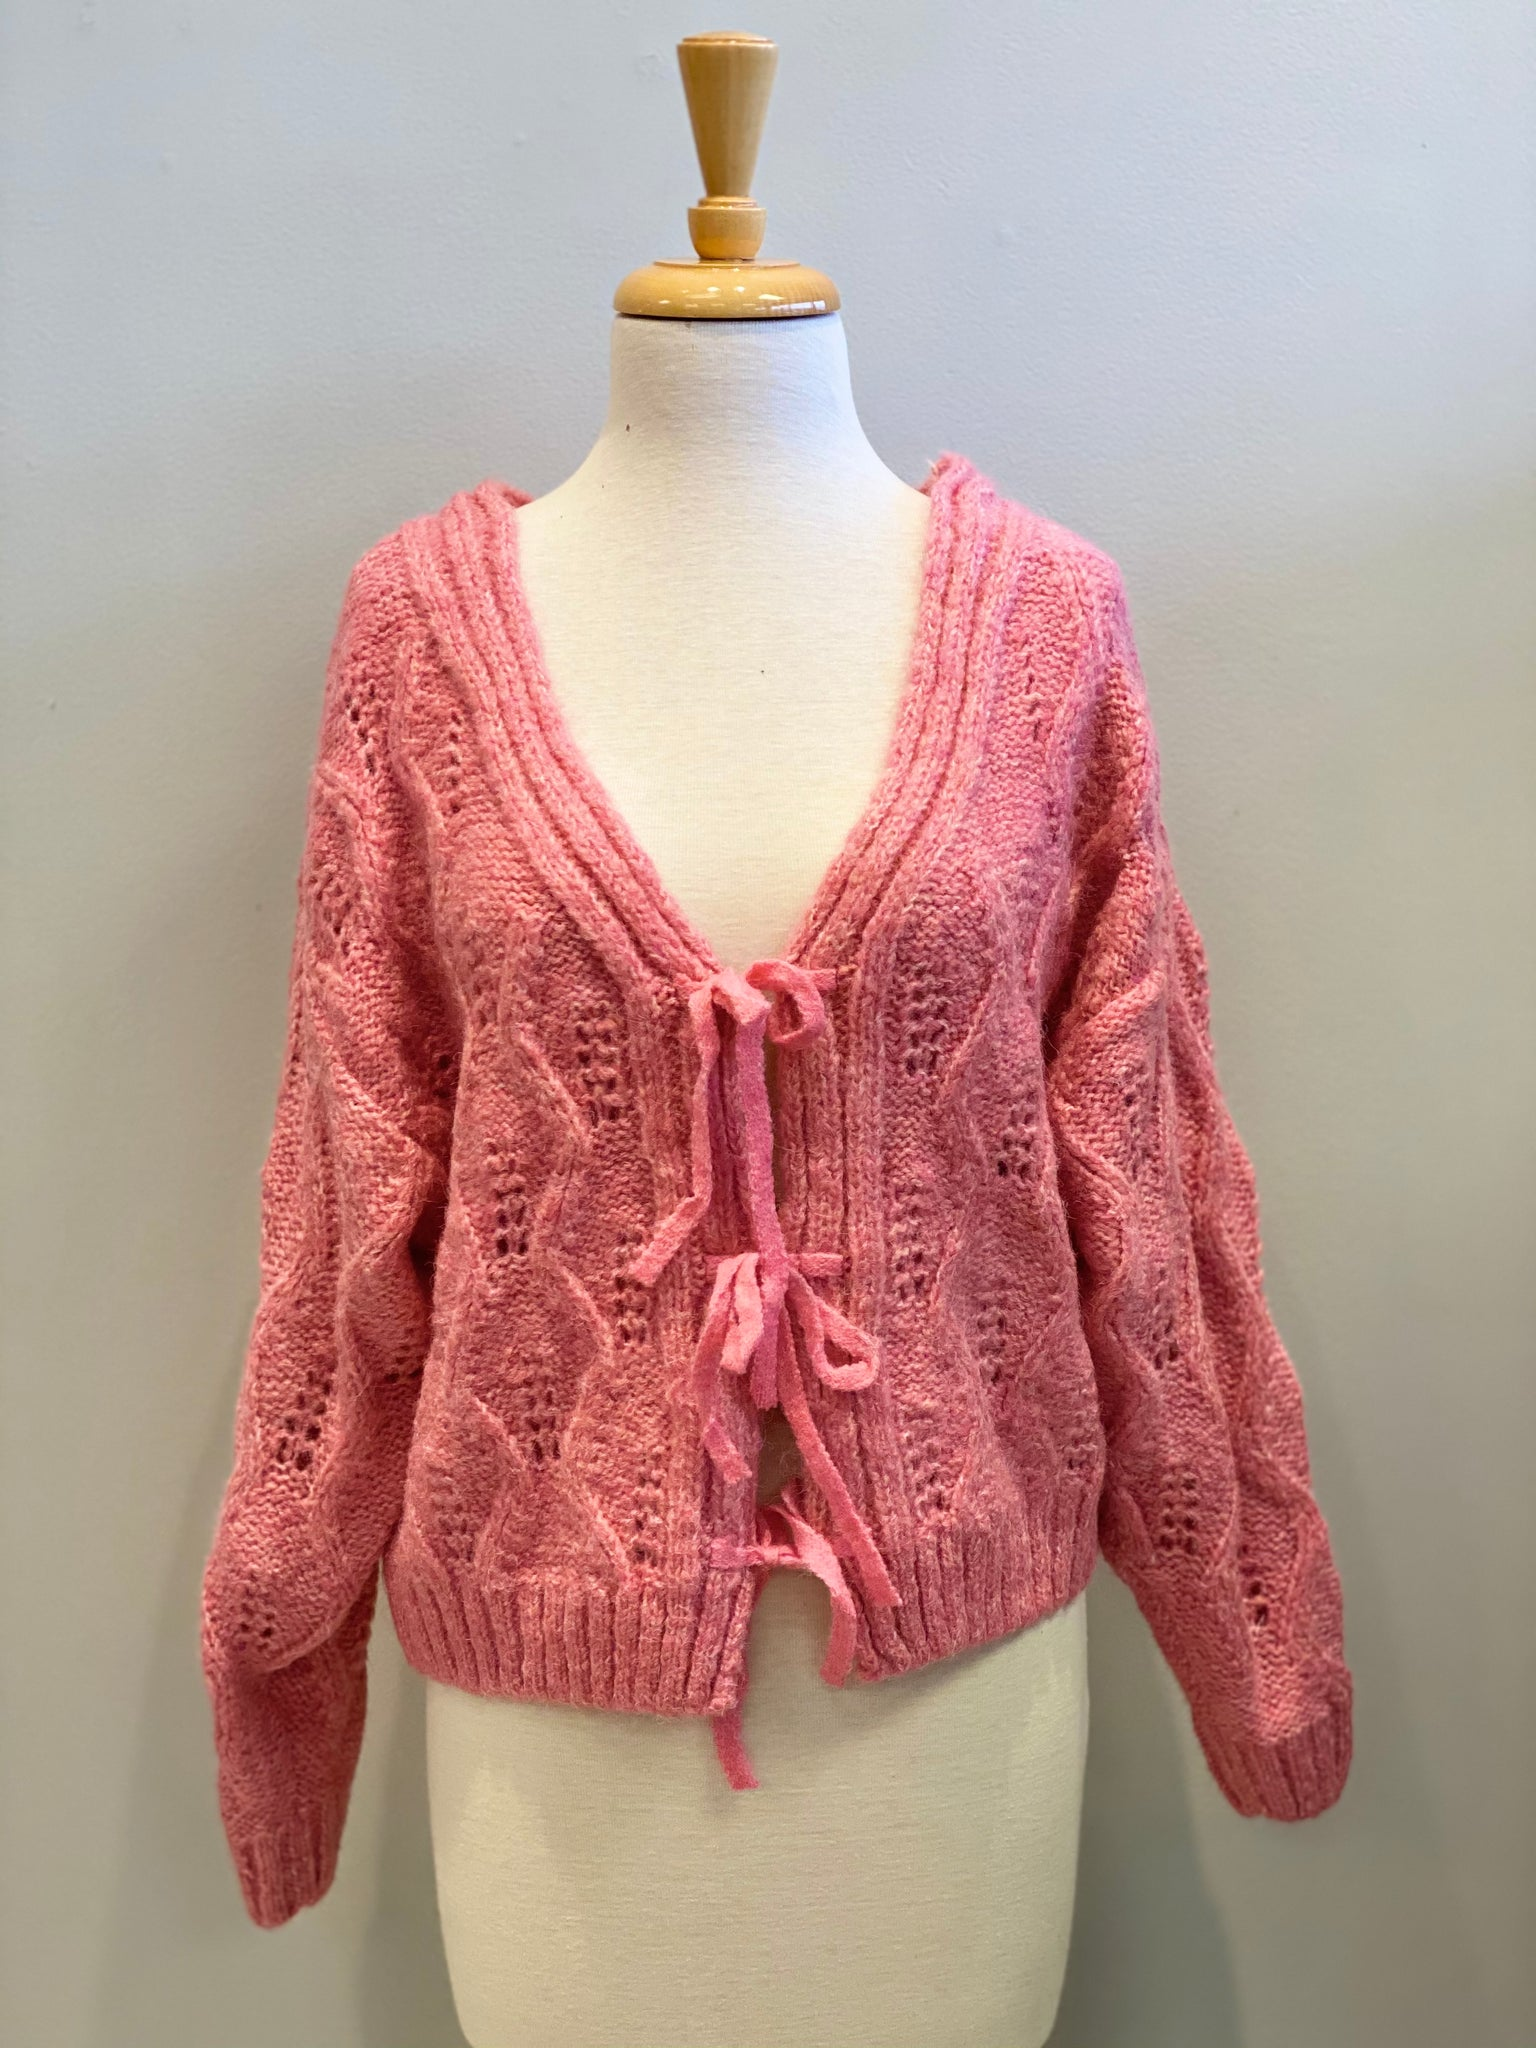 No Brainer Ribbon Cardi